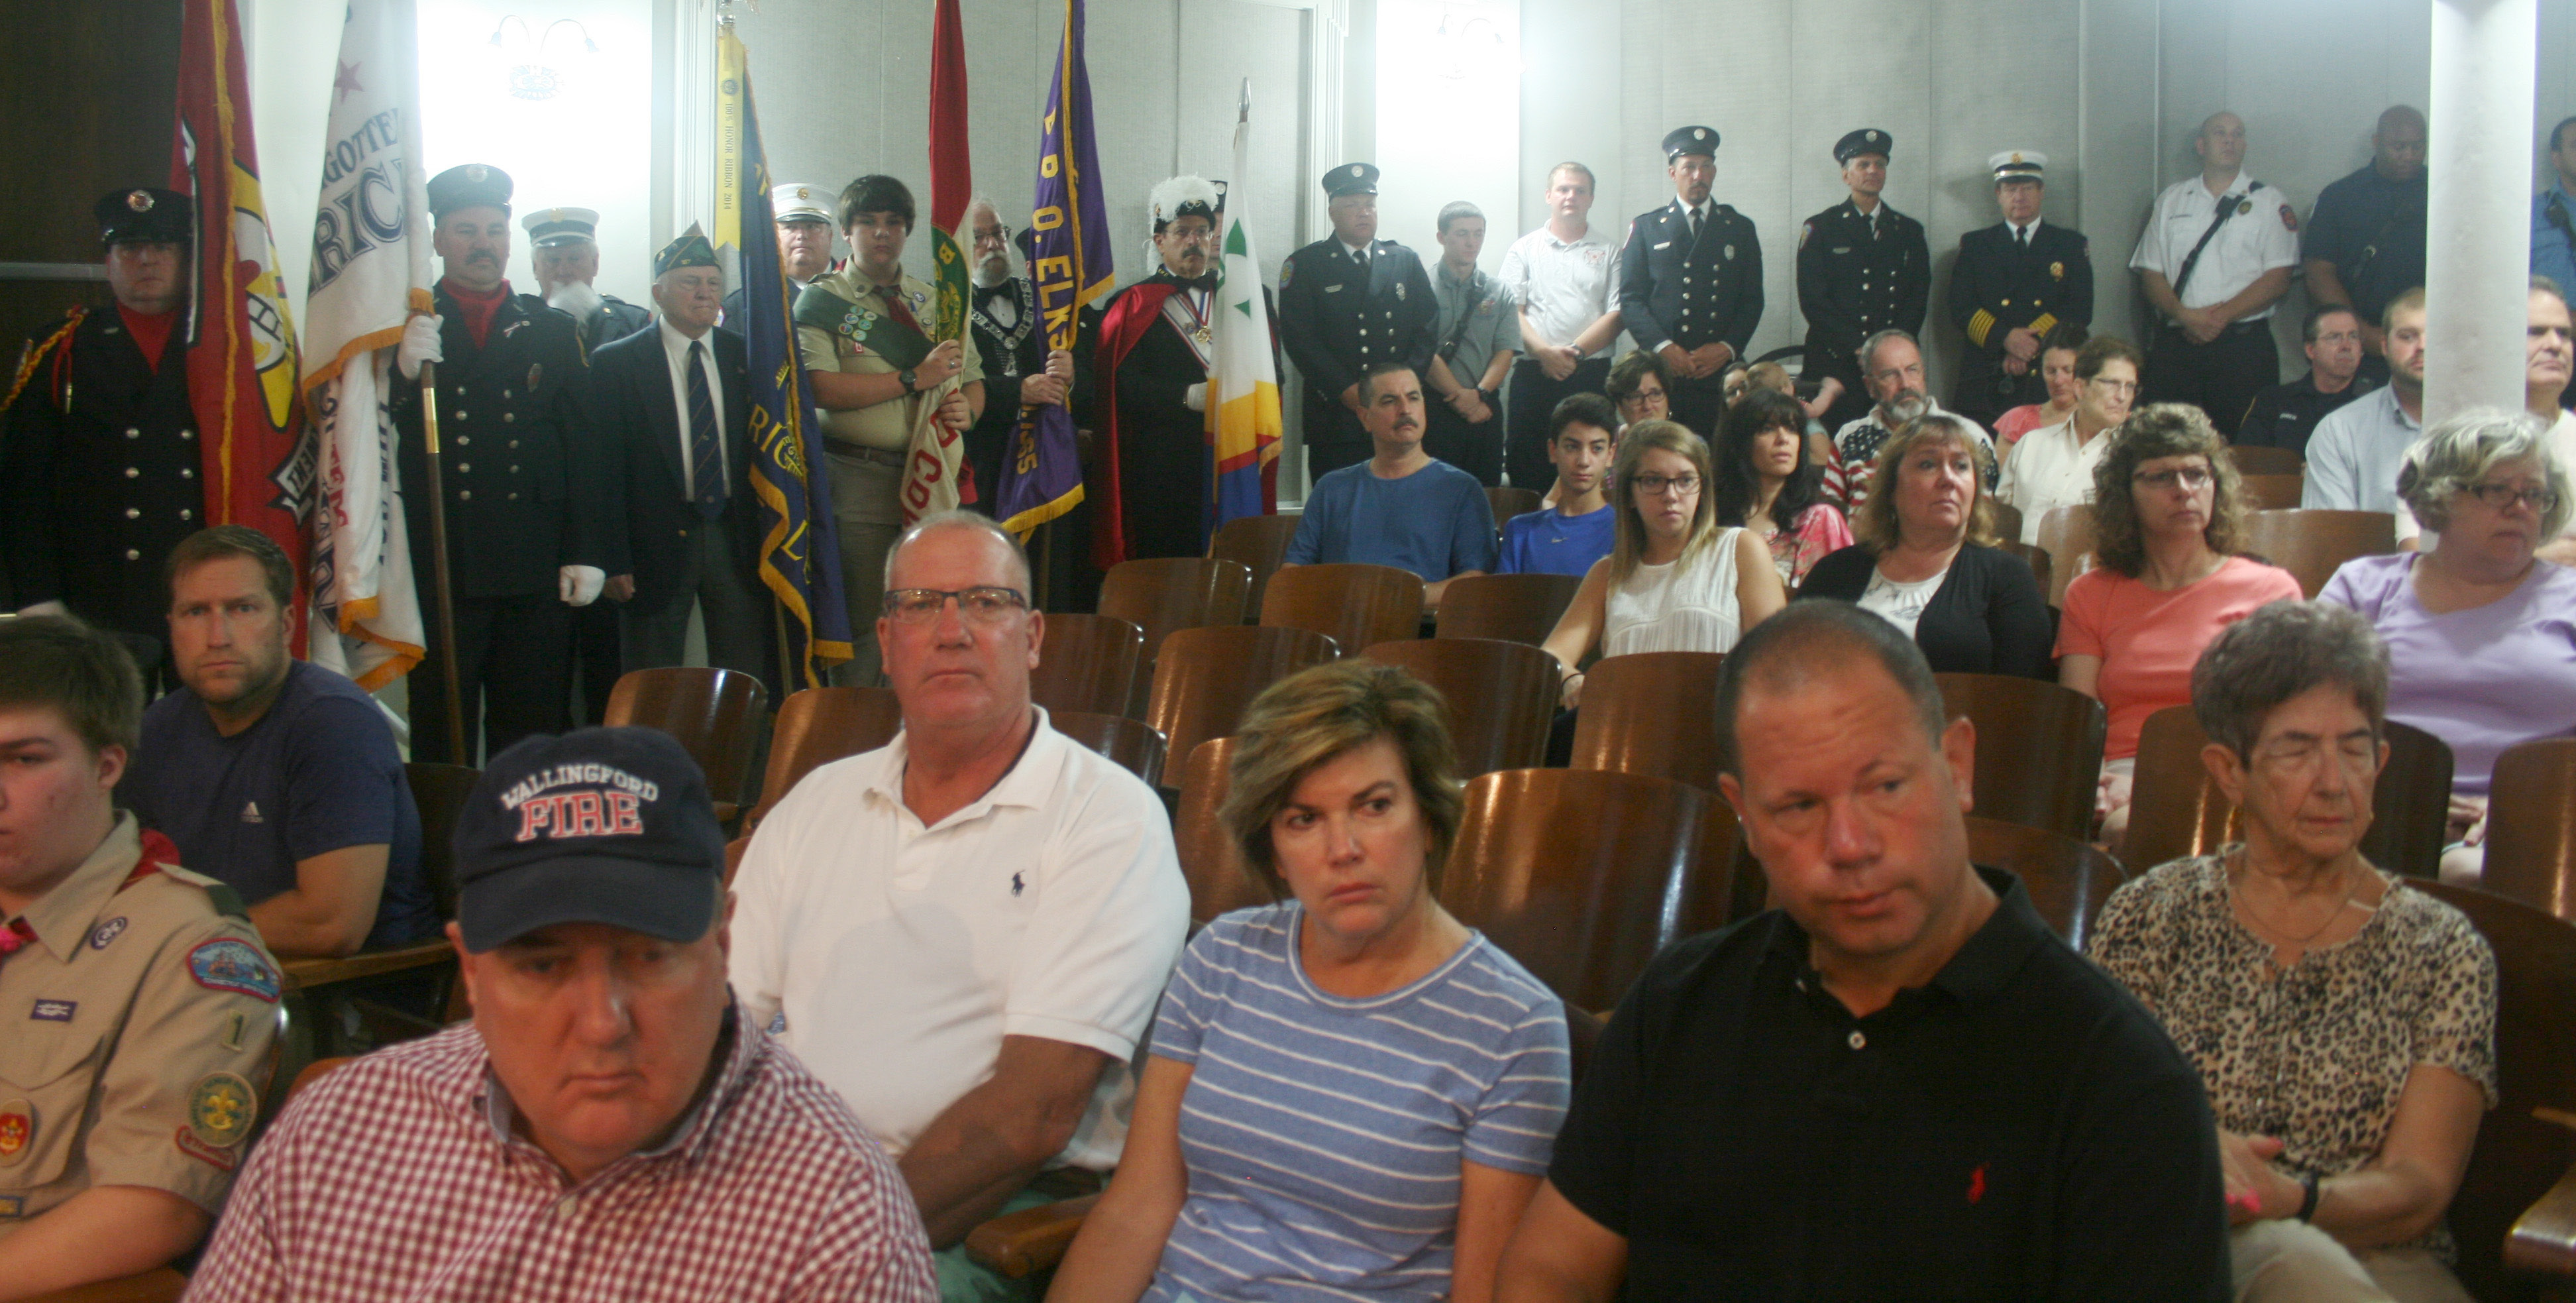 Members of the Wallingford Fire Department, Wallingford Police Department, veterans and fraternal groups and Boy Scout Troop 1 lined the walls of the town council chambers at the 9/11 remembrance ceremony Sunday at the Wallingford Town Hall.  | Lauren Takores, Record-Journal